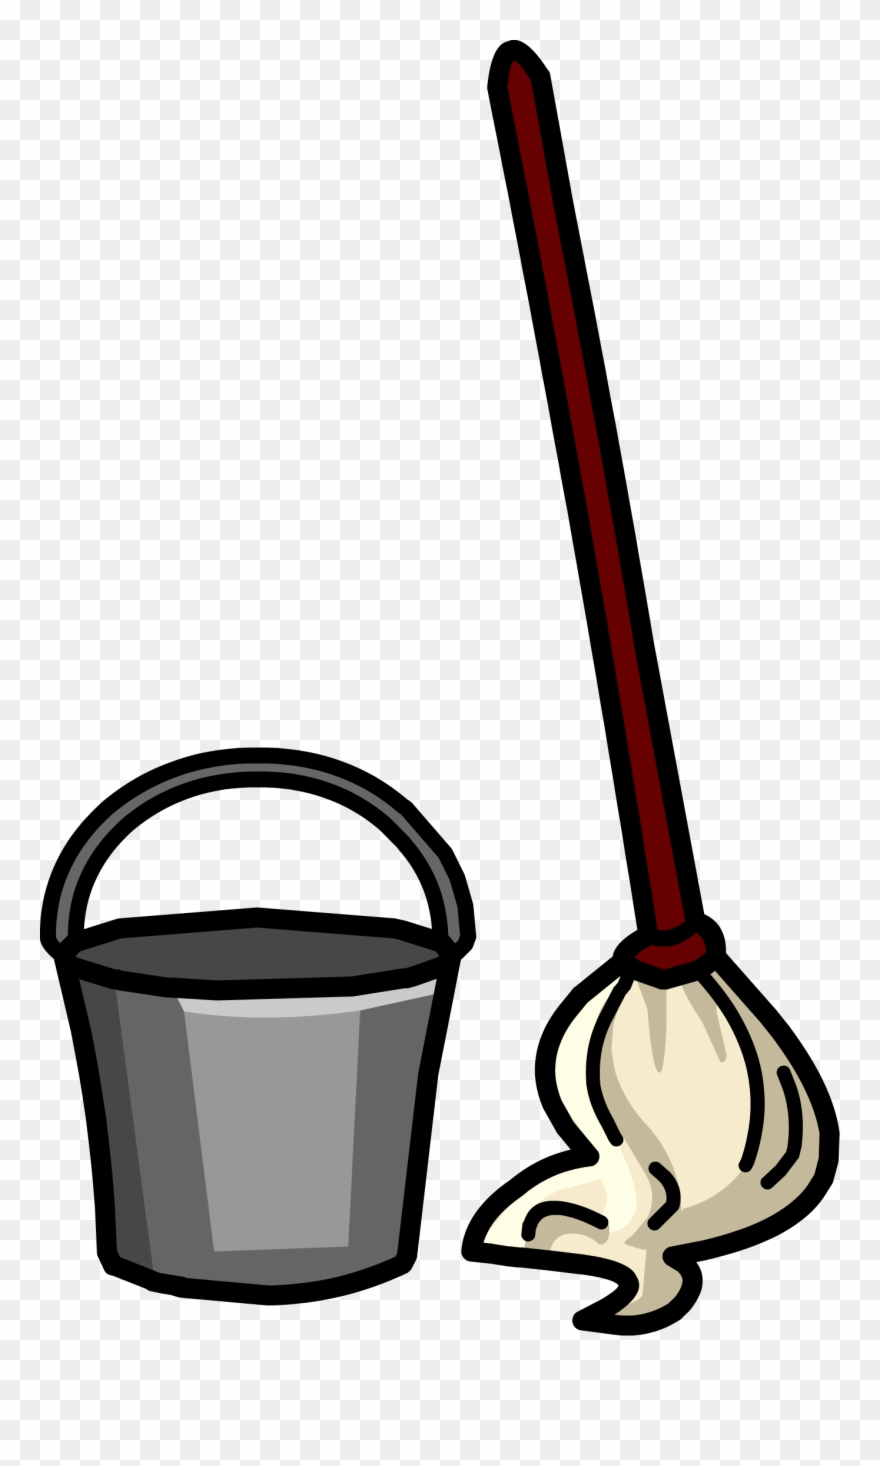 Free Mop Clip Art Bucket Broom Pic.